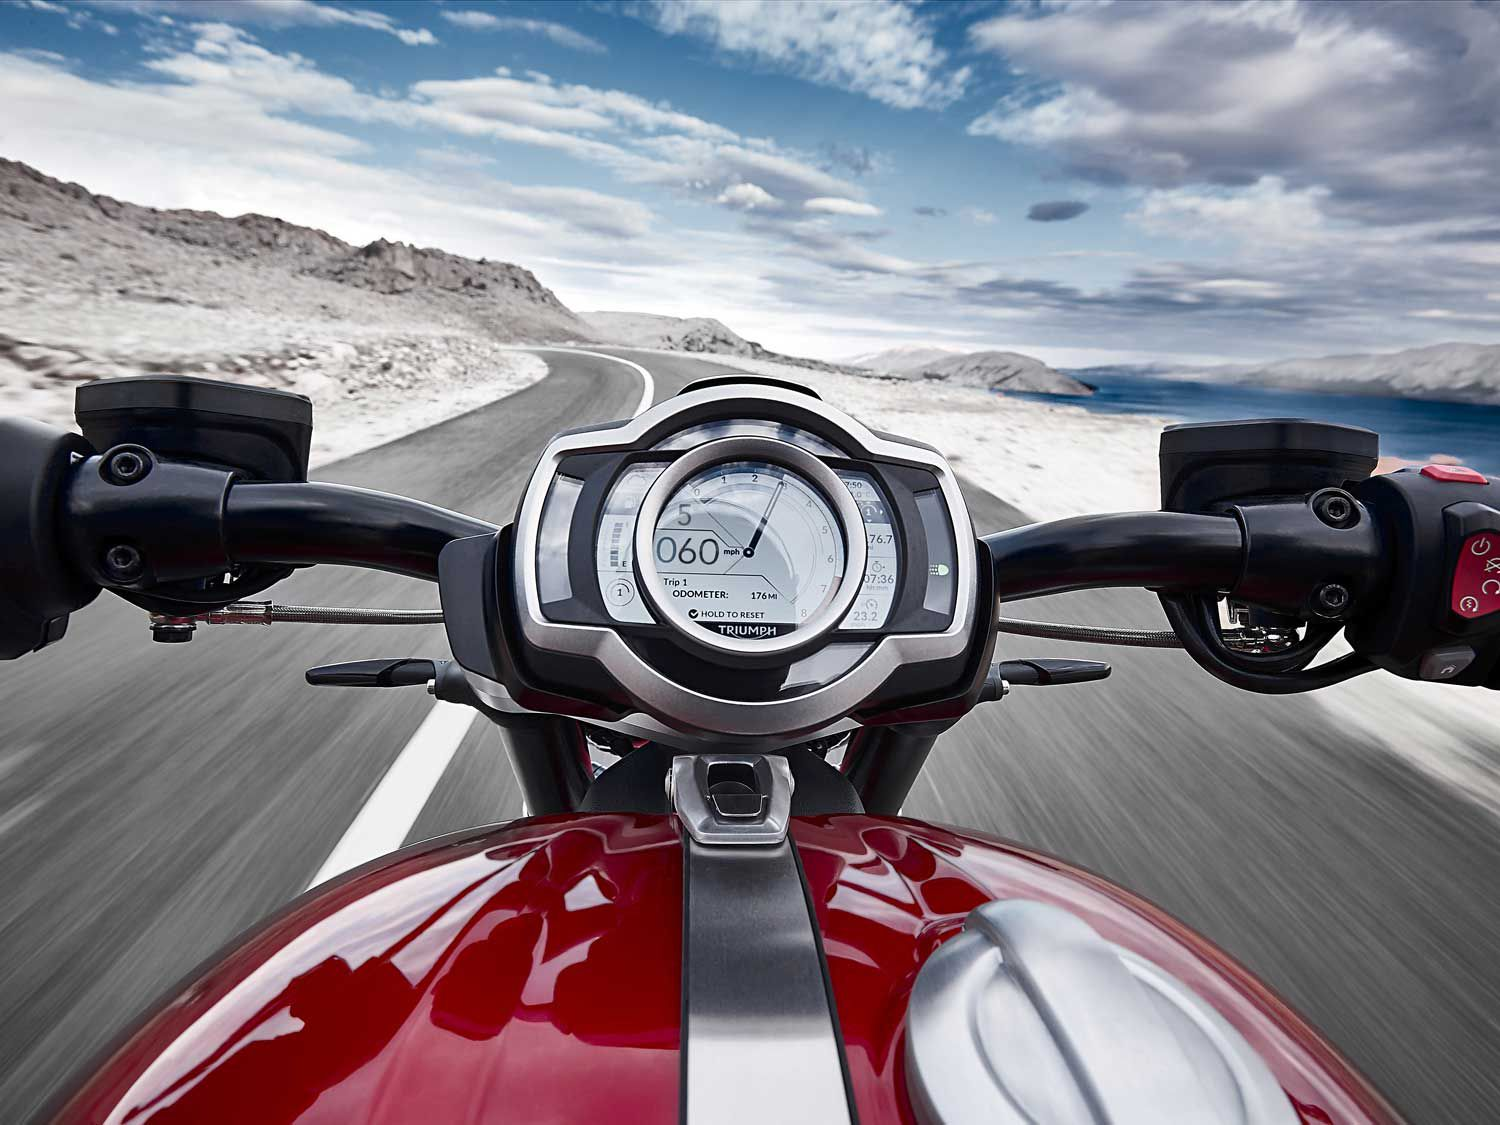 Triumph's all-new TFT display is customizable, and a Bluetooth connectivity package is now available as an optional accessory.